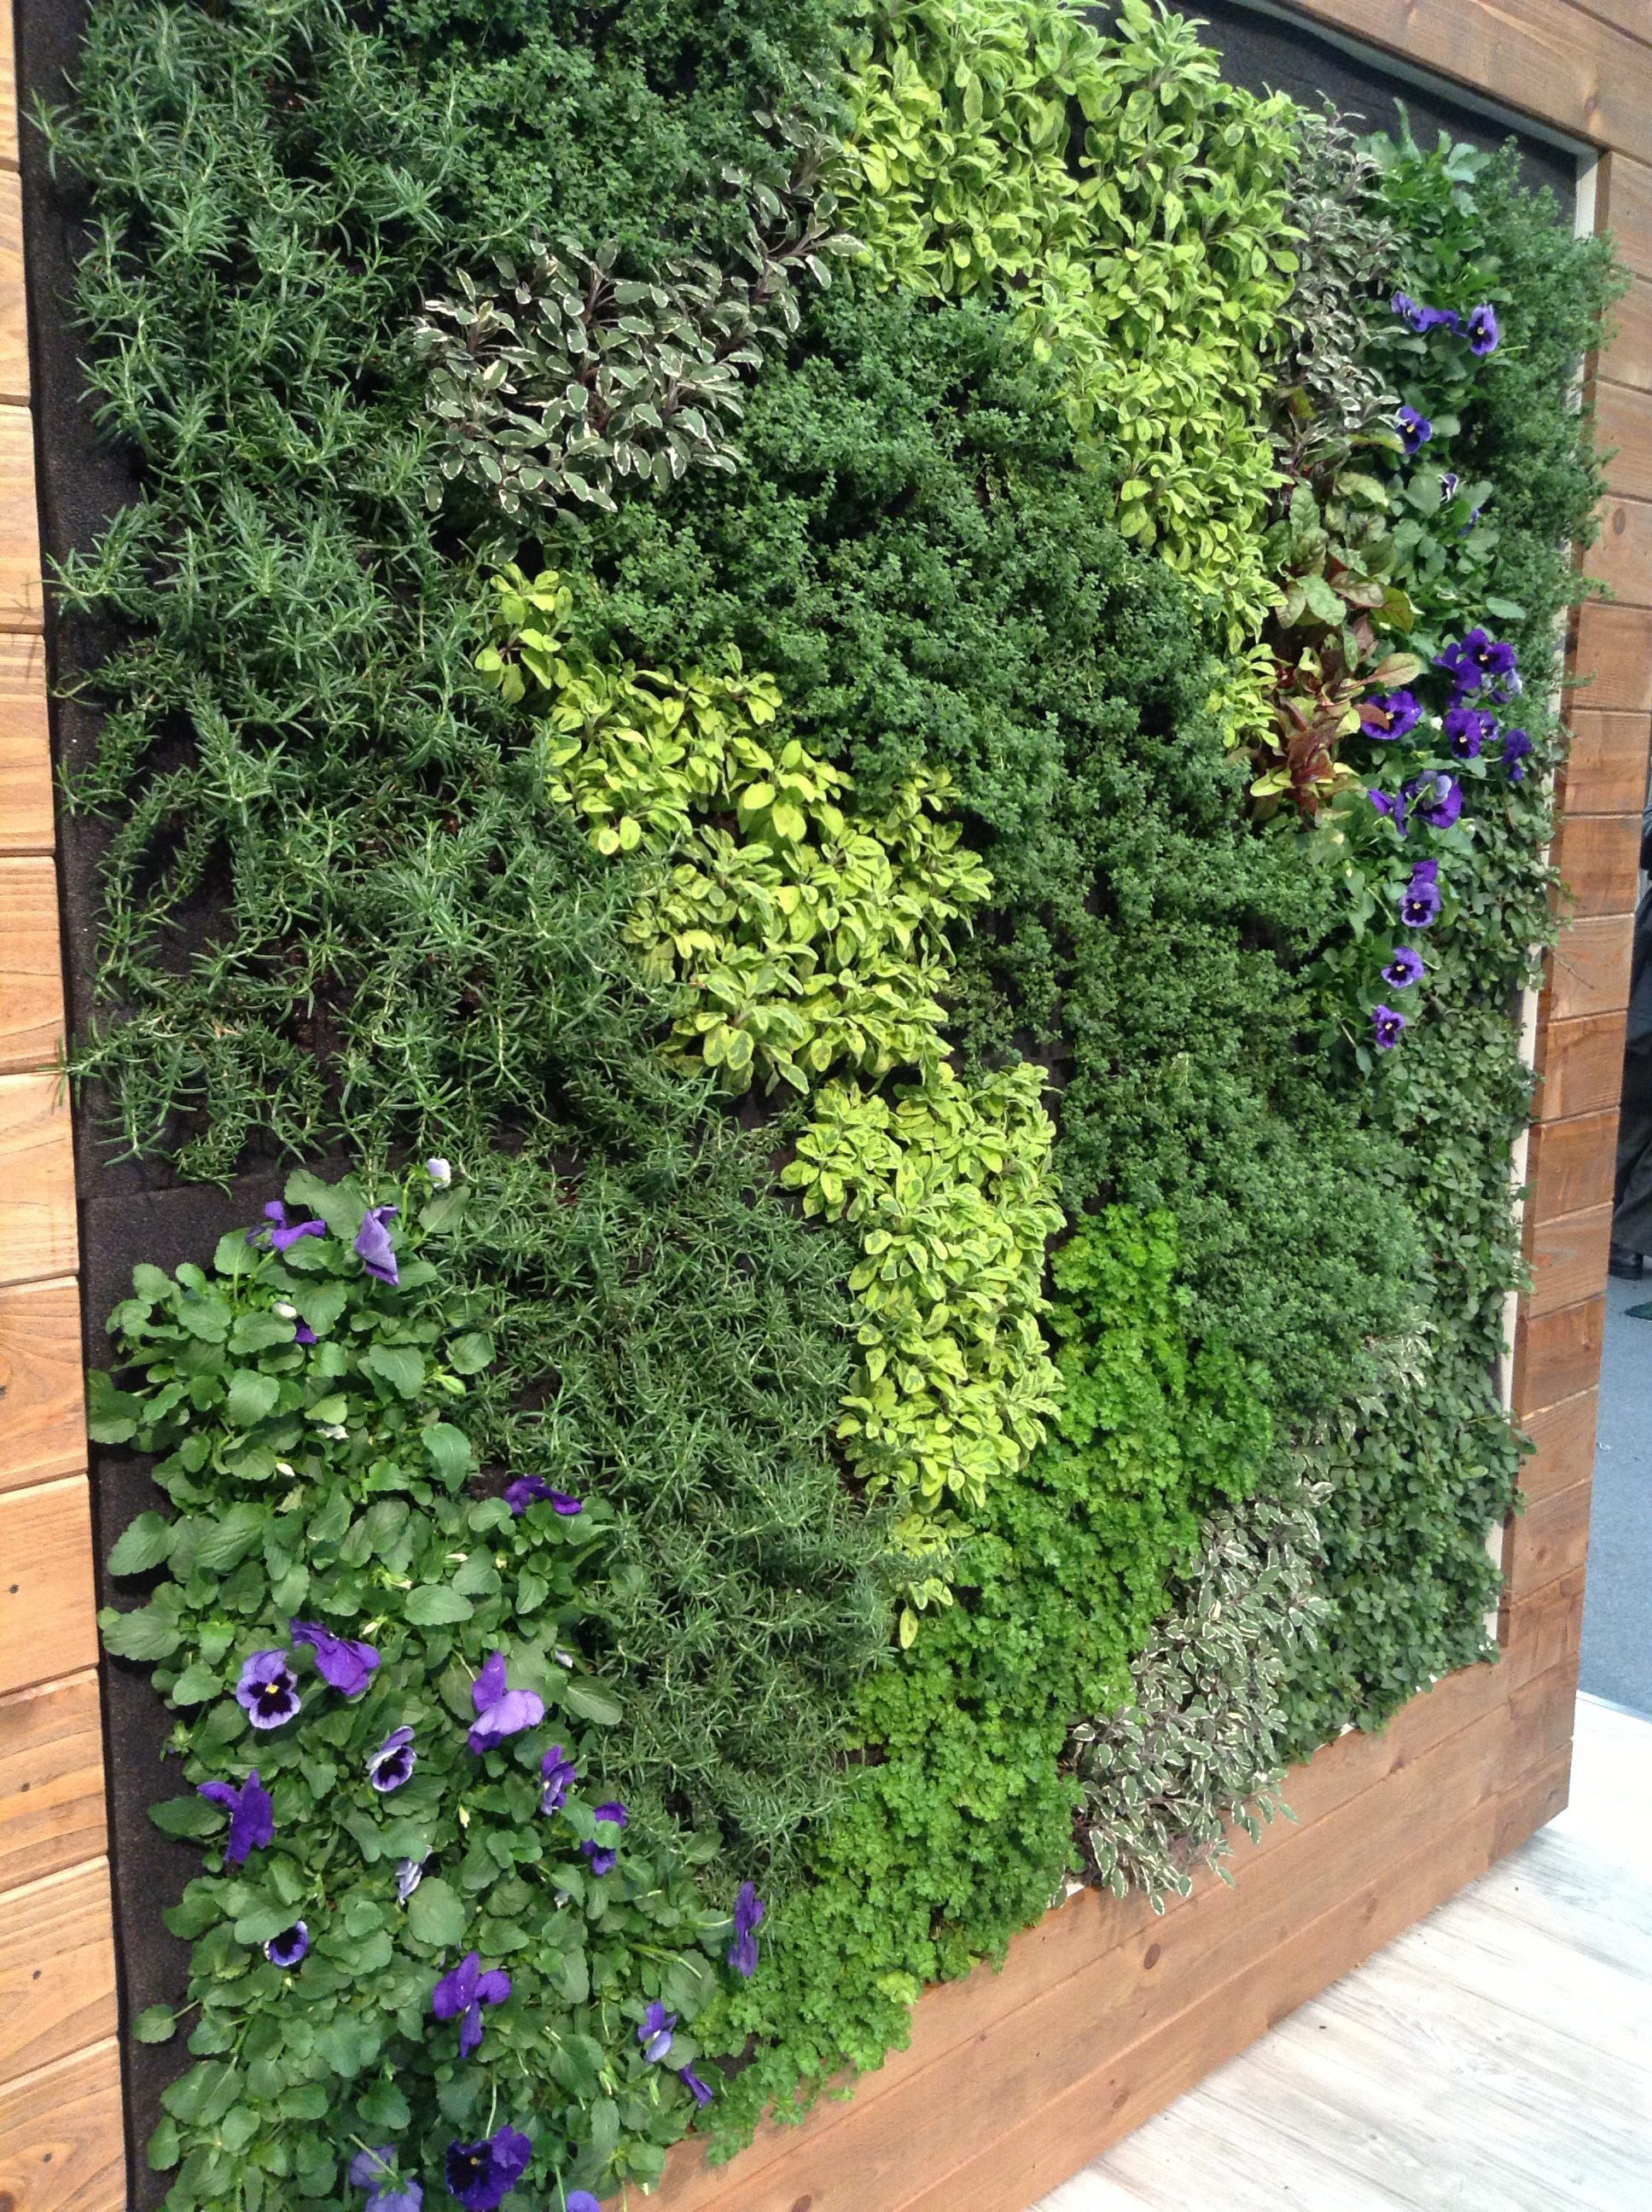 Architectural digest home design show 2013 stylesson Herb garden wall ideas